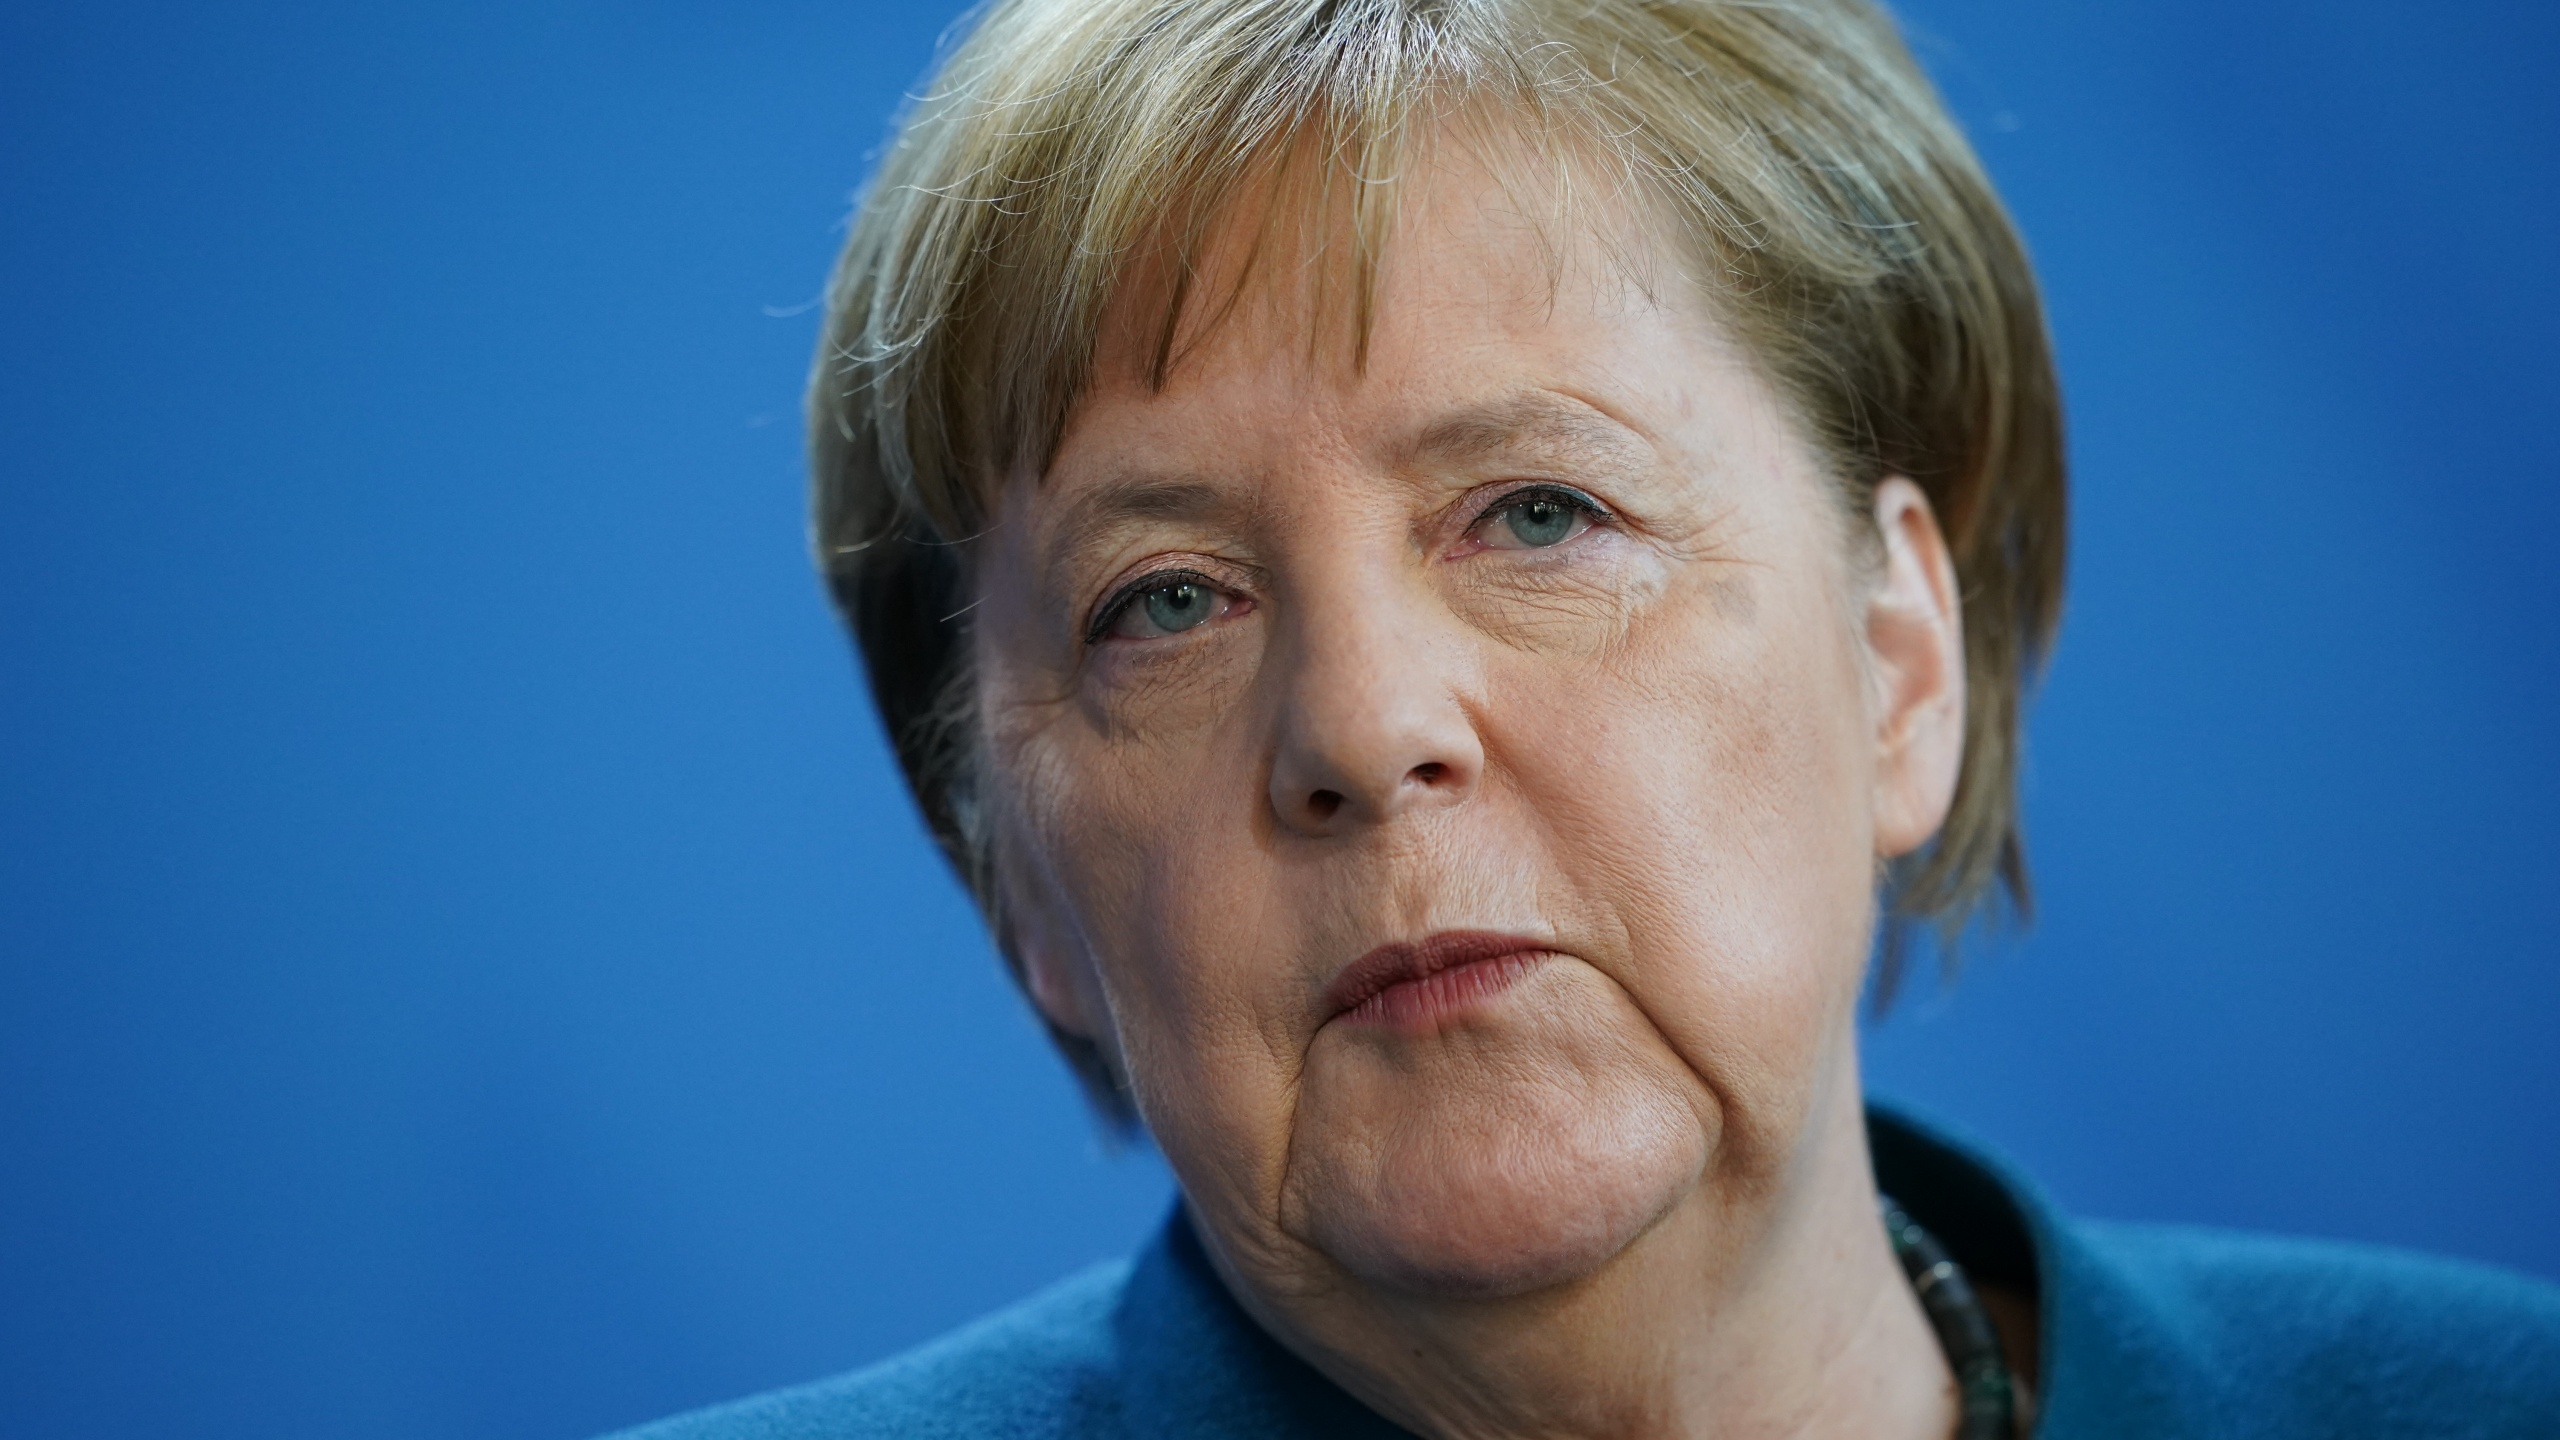 German Chancellor Angela Merkel speaks to reporters to announce further measures to combat the spread of the coronavirus and COVID-19, the disease the virus causes, after she held a teleconference with the governors of Germany's 16 states on March 22, 2020, in Berlin, Germany. (Clemens Bilan - Pool/Getty Images)